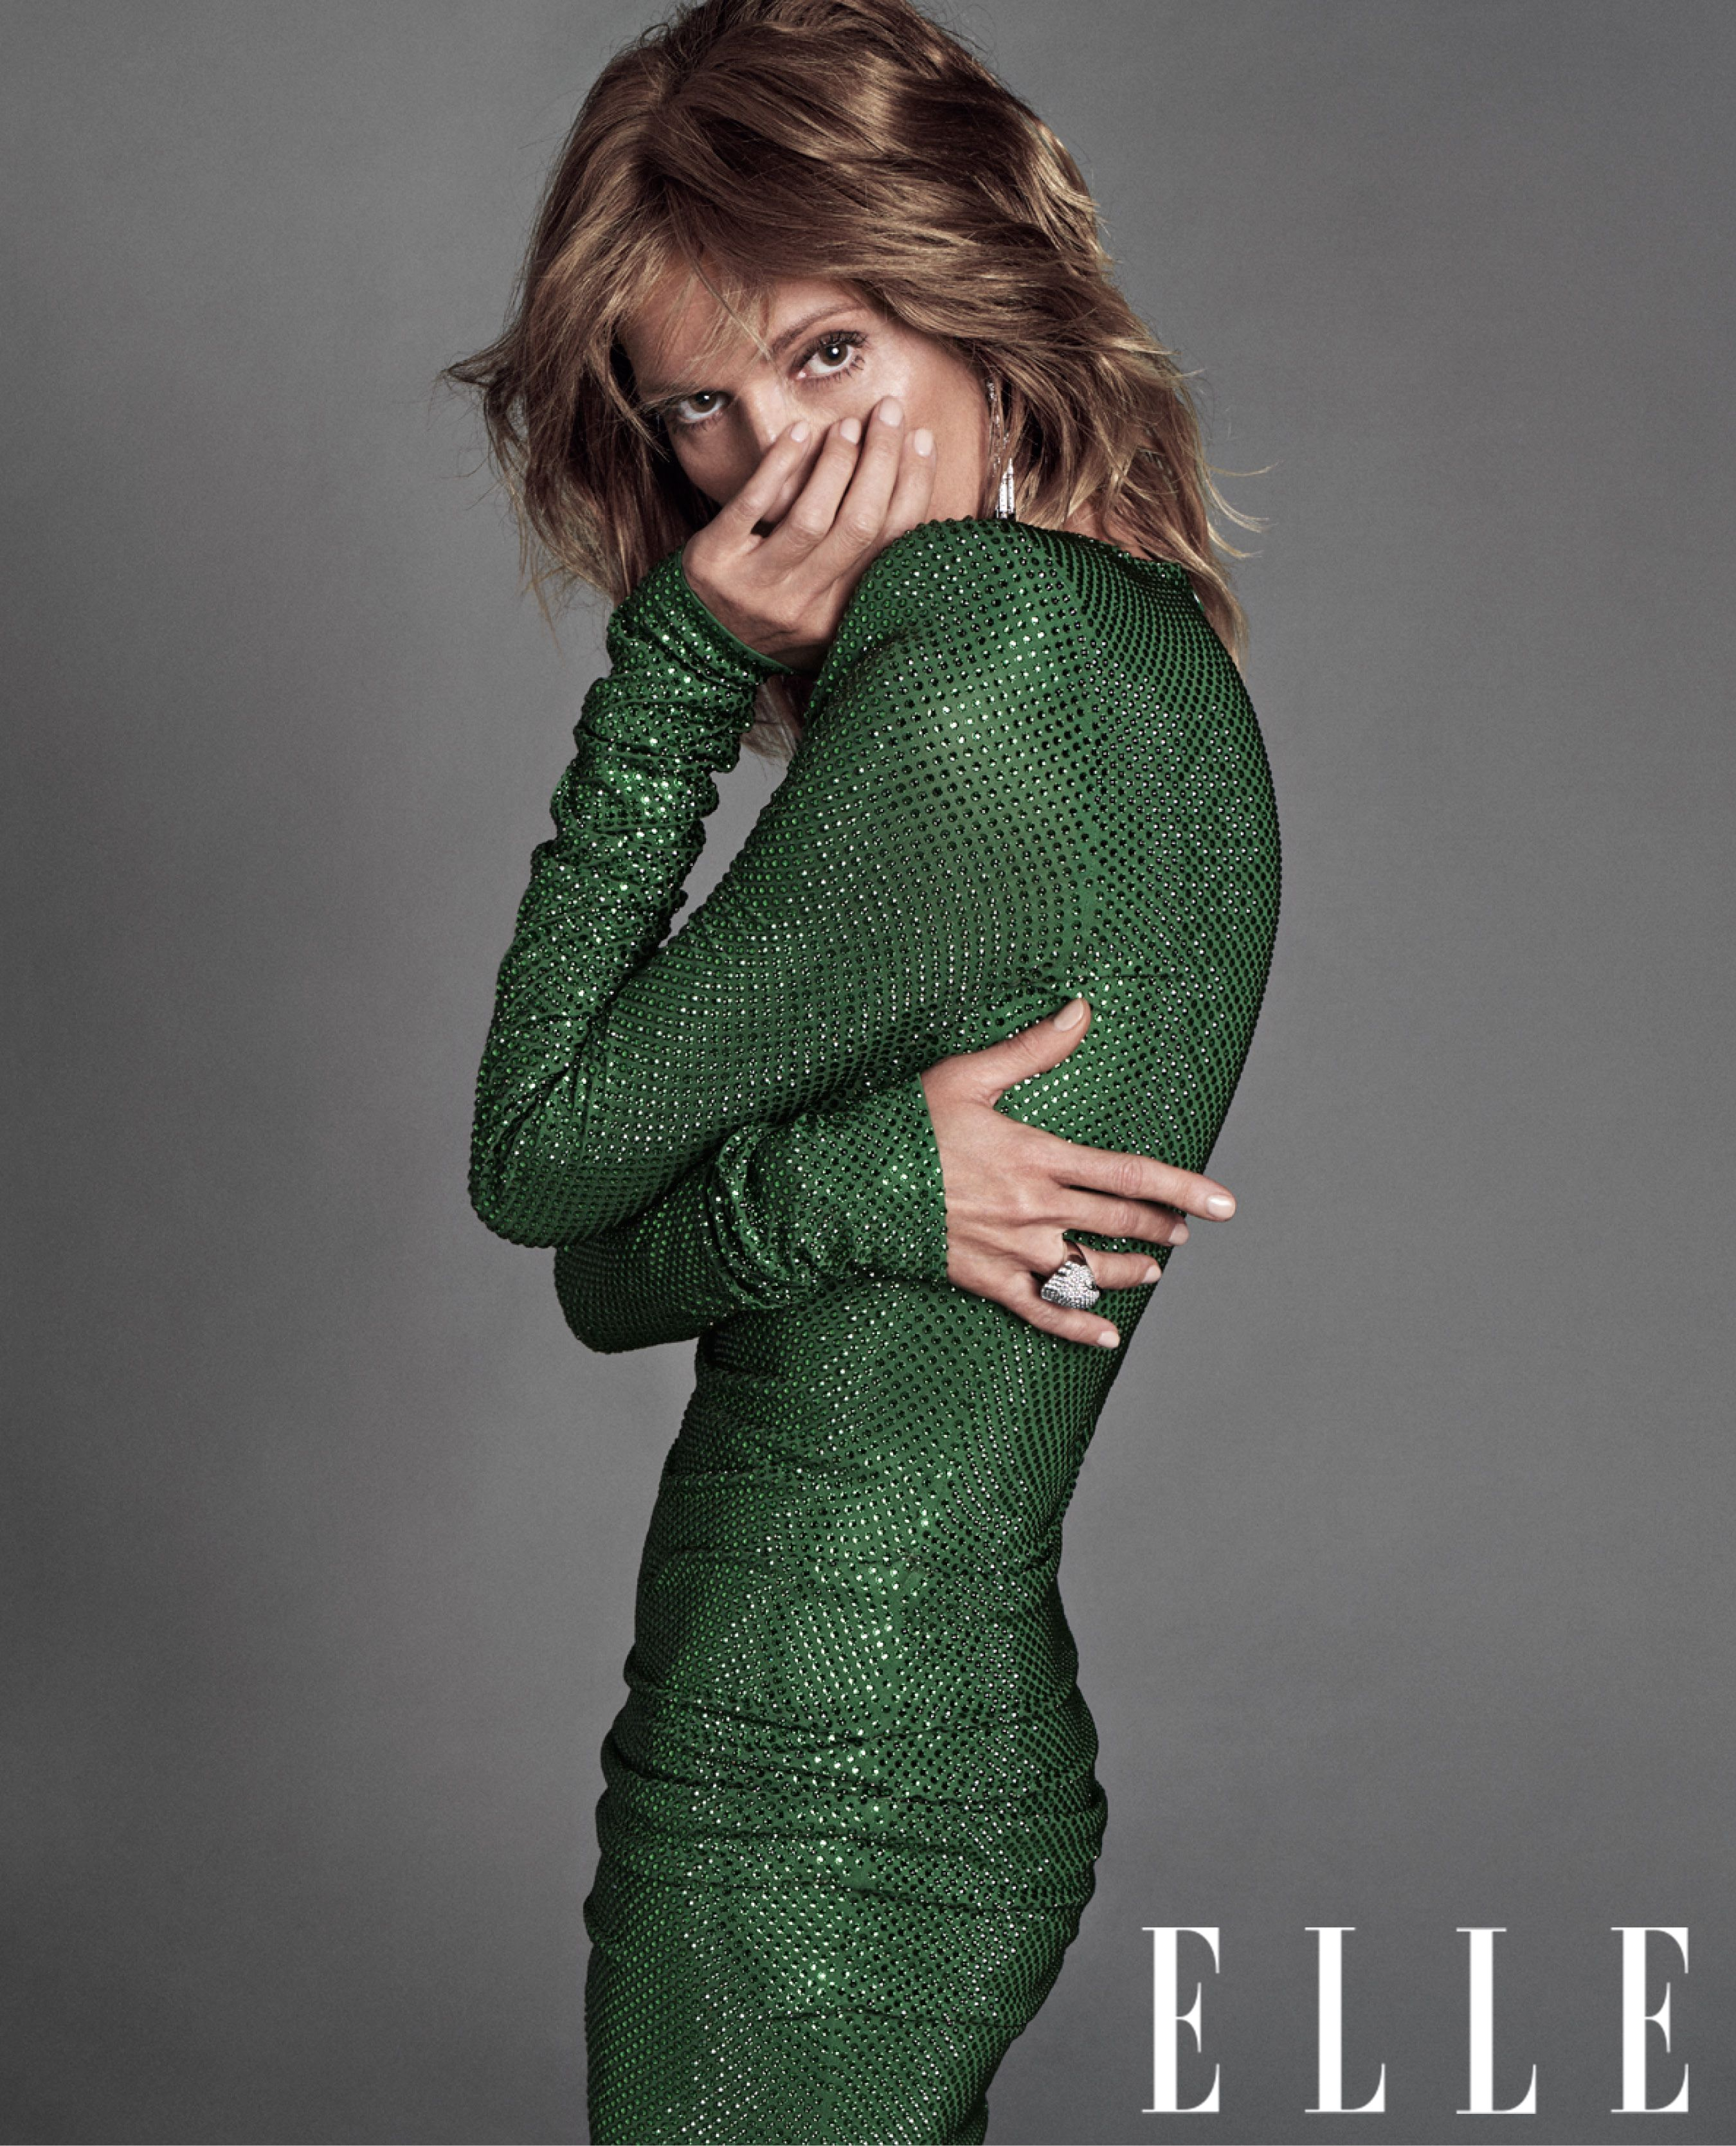 Celine Dion On the End of Her Las Vegas Show, New Album, and